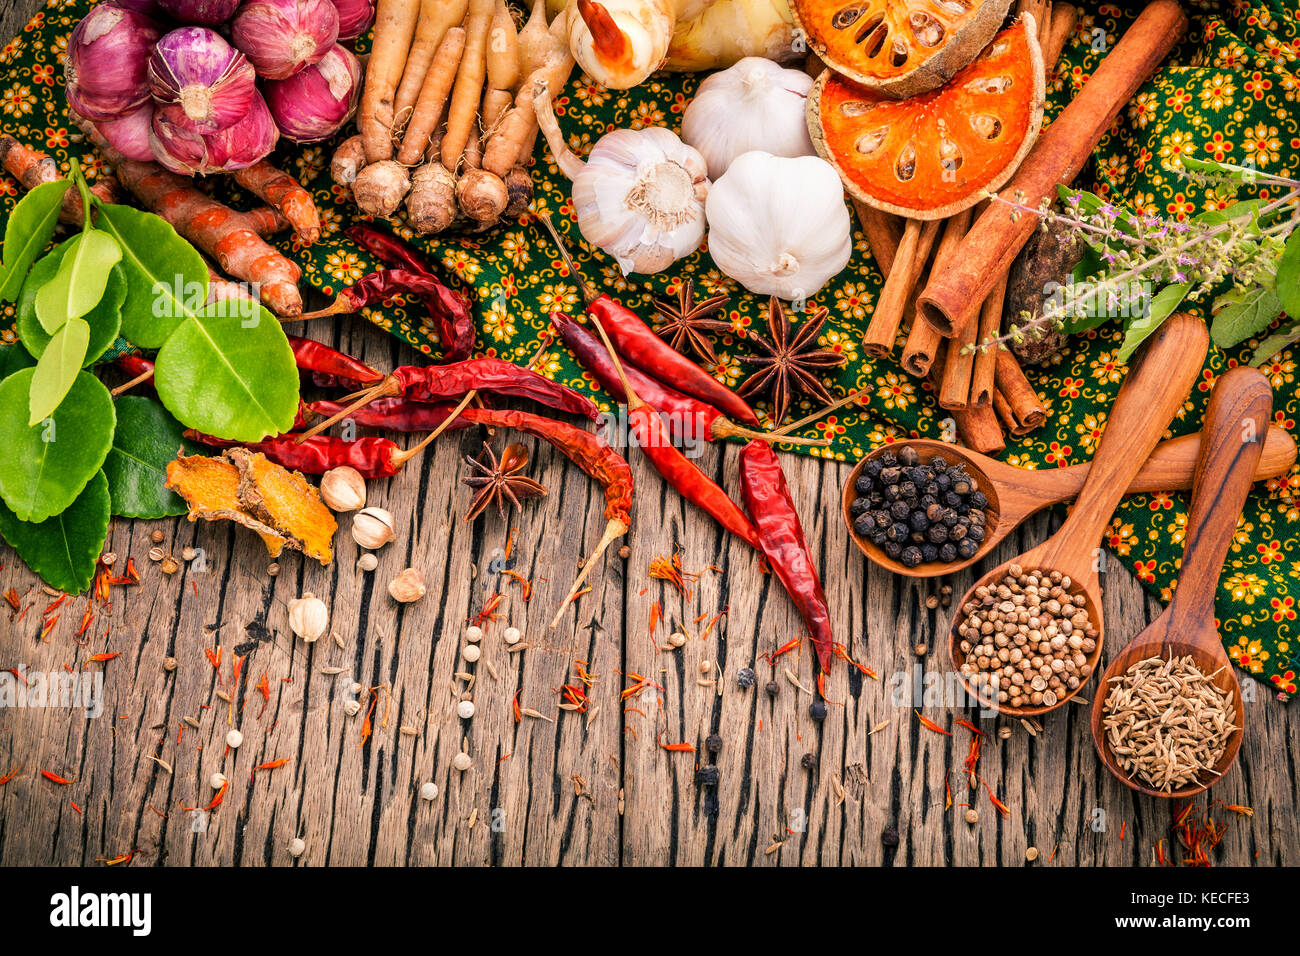 Assortment of Thai food Cooking ingredients .Red curry paste ingredients of thai popular food on rustic wooden background. - Stock Image